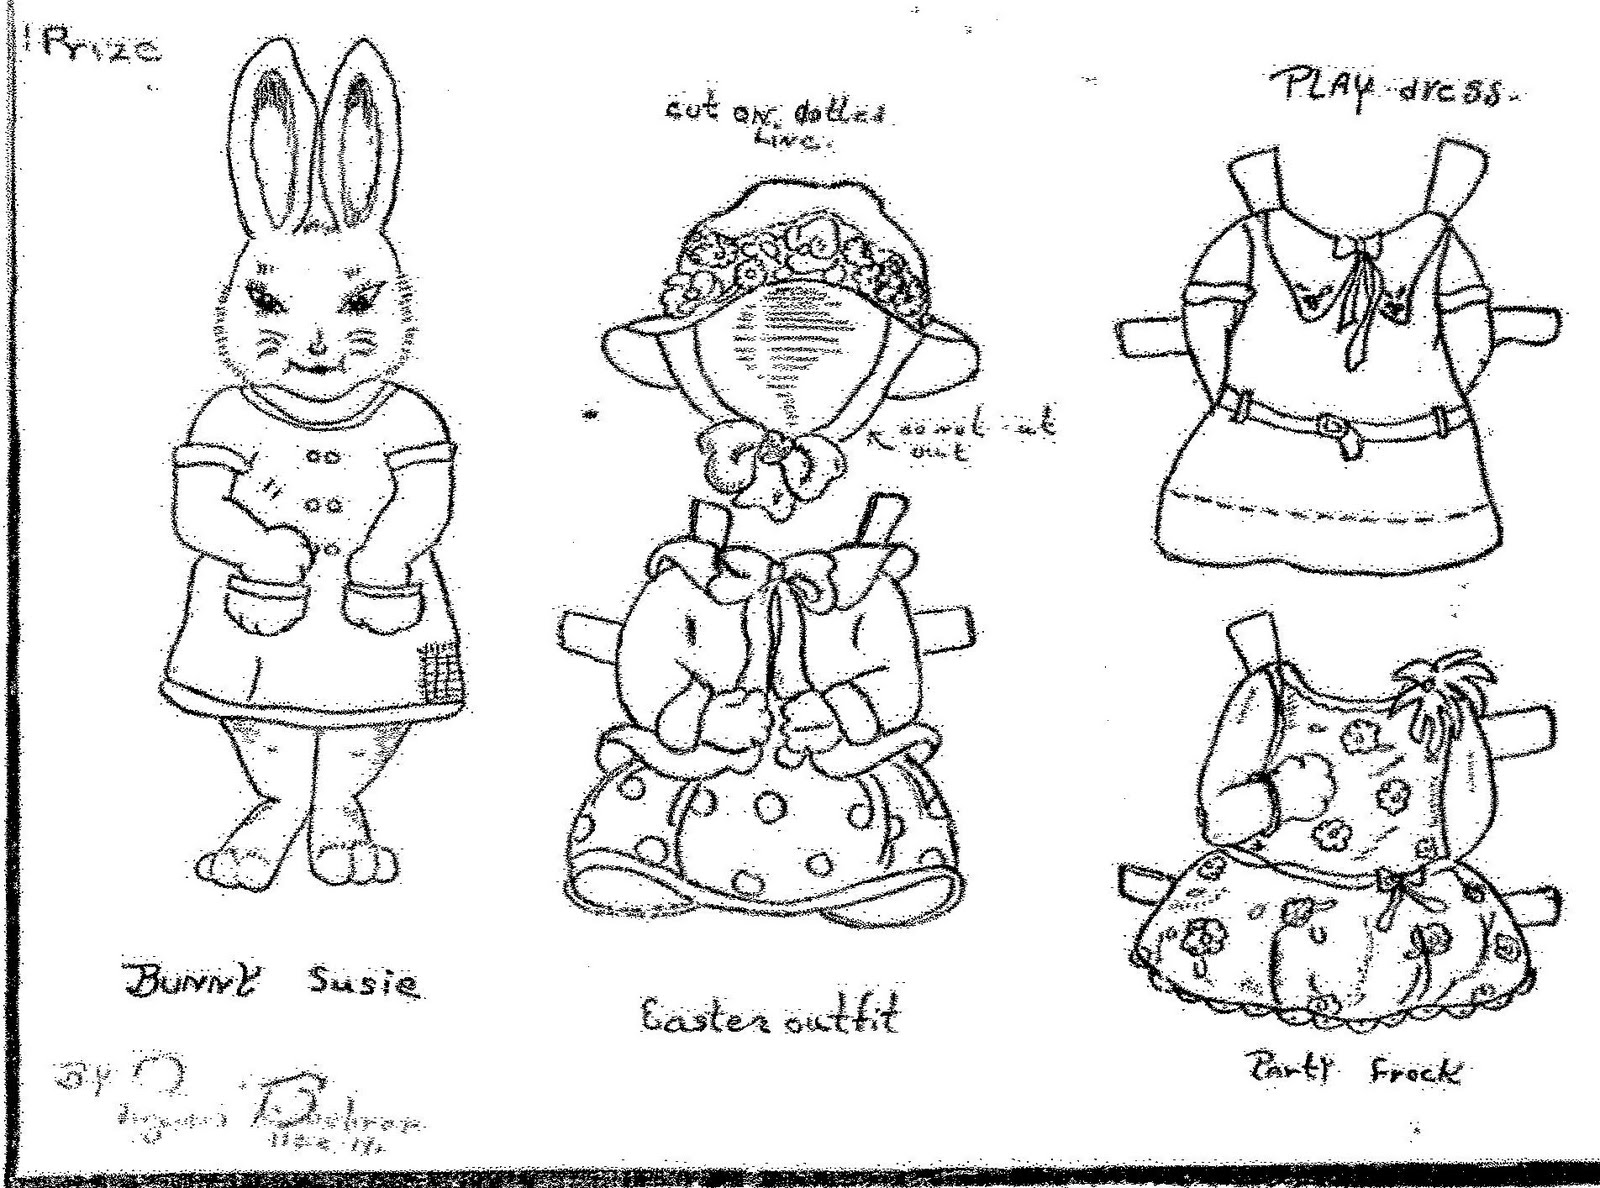 Mostly Paper Dolls: A RABBIT A DAY . . . Miss Susie